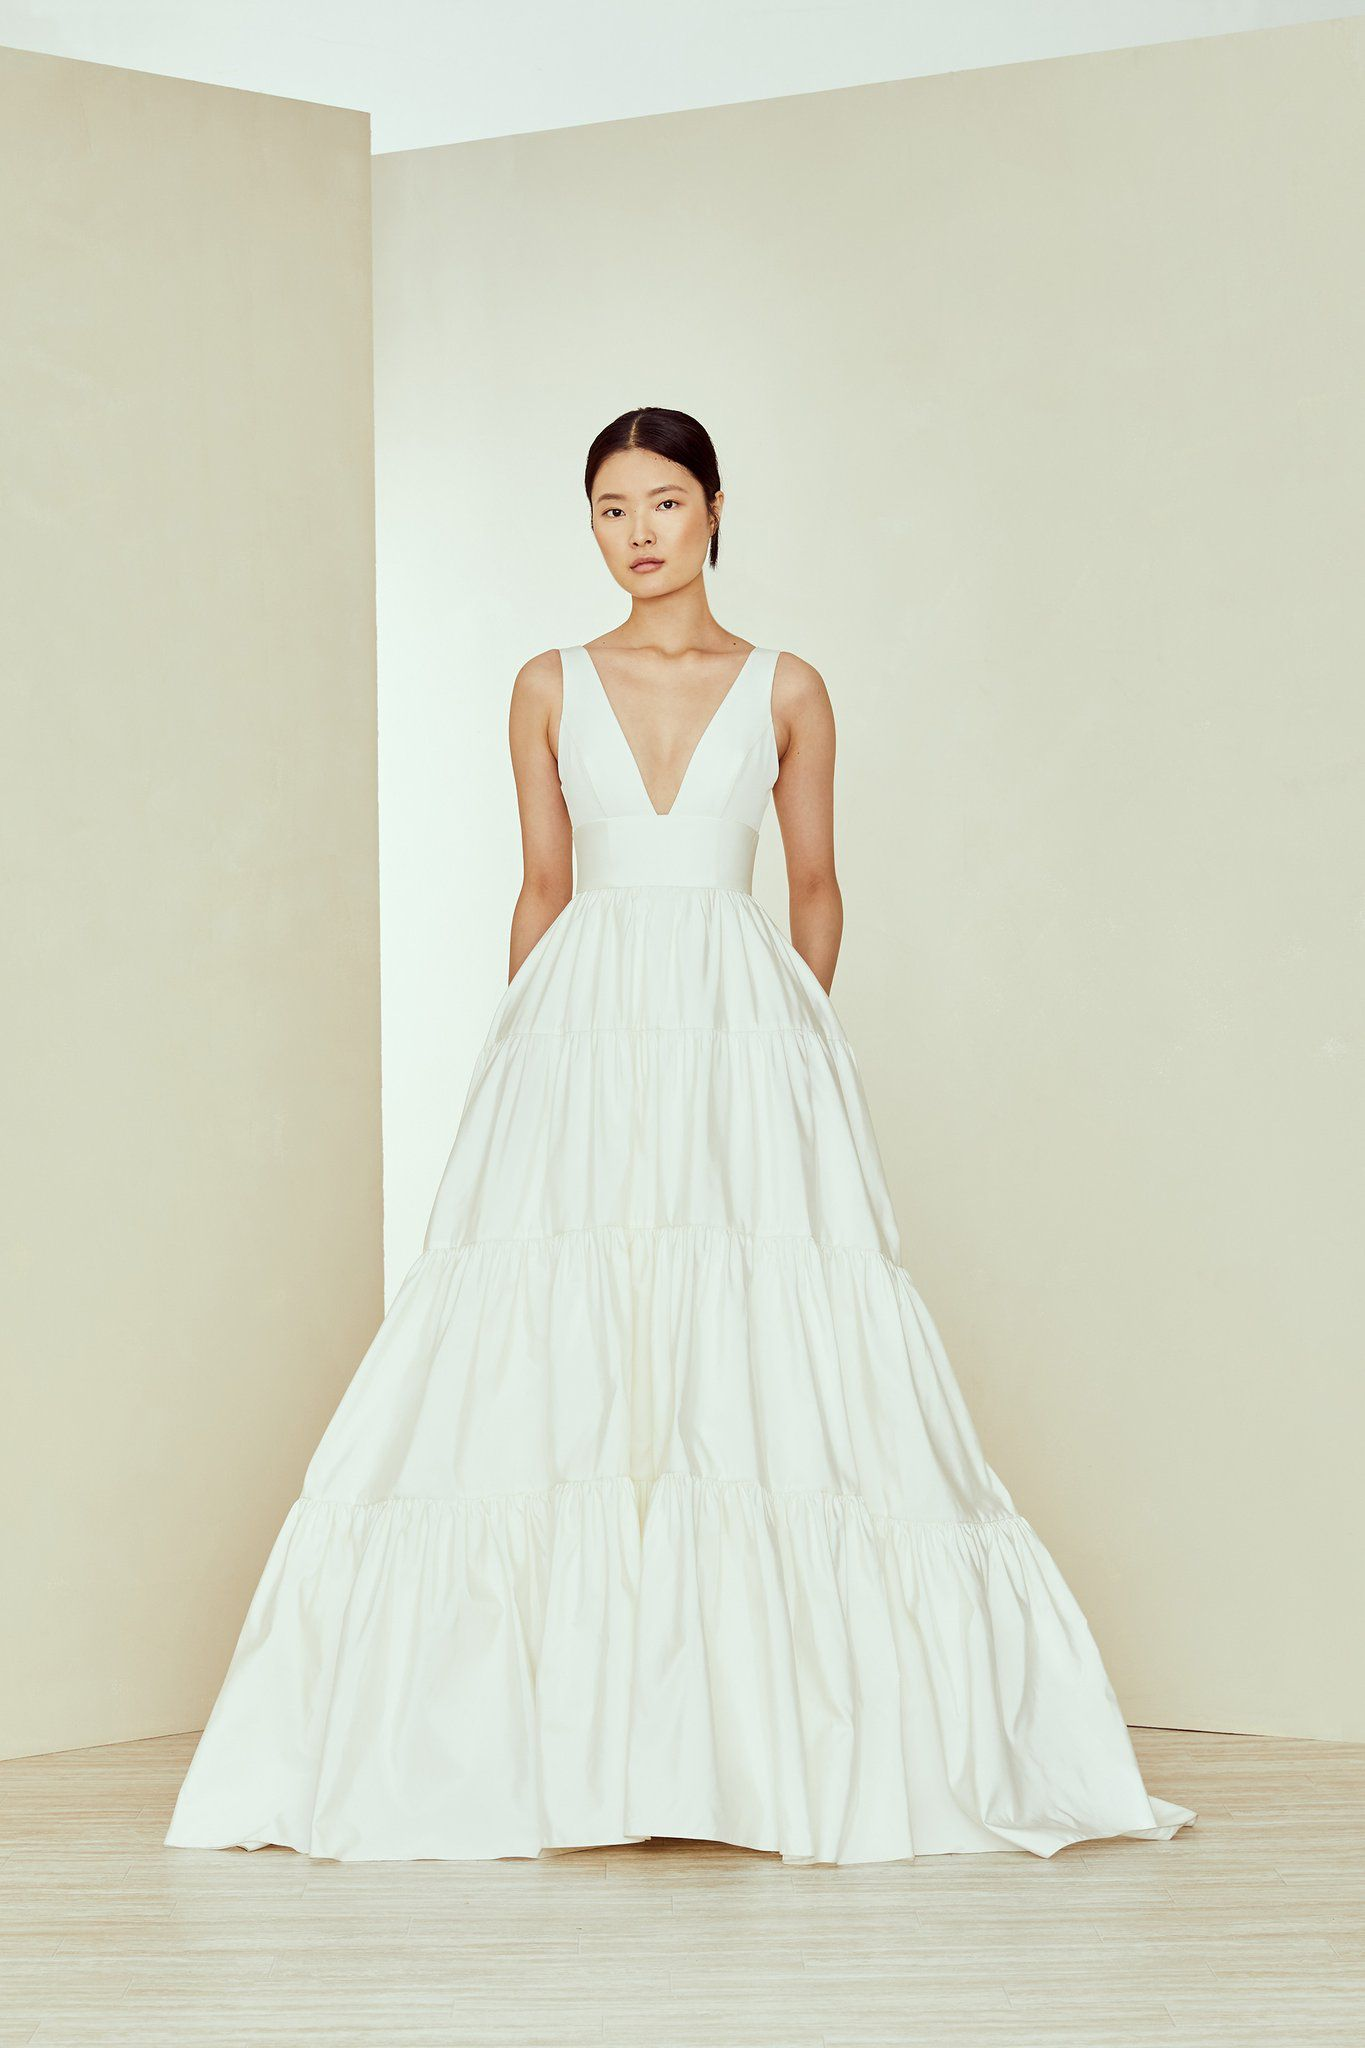 Model in V-neck white wedding gown with tiered skirt and pockets